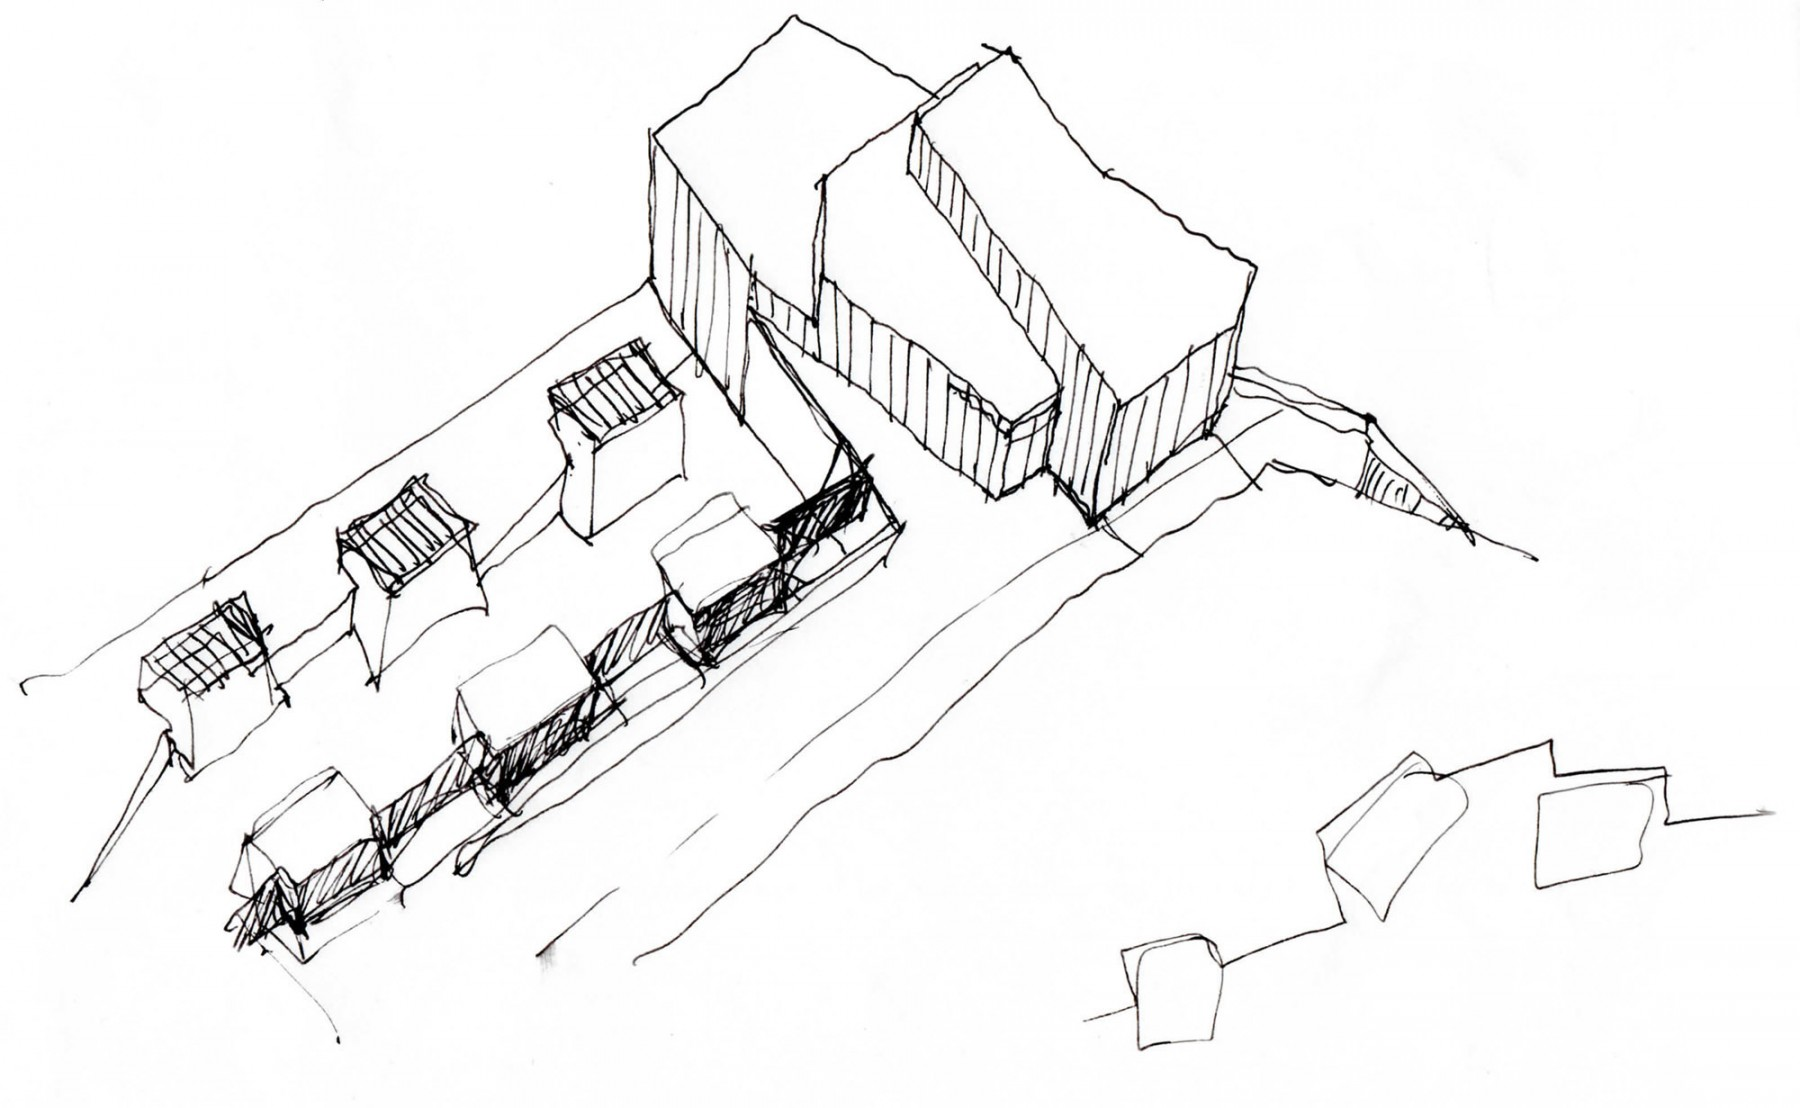 Jamie-Fobert-Architects-extension-to-Tate-St-Ives-sketch-rooftop-terraces